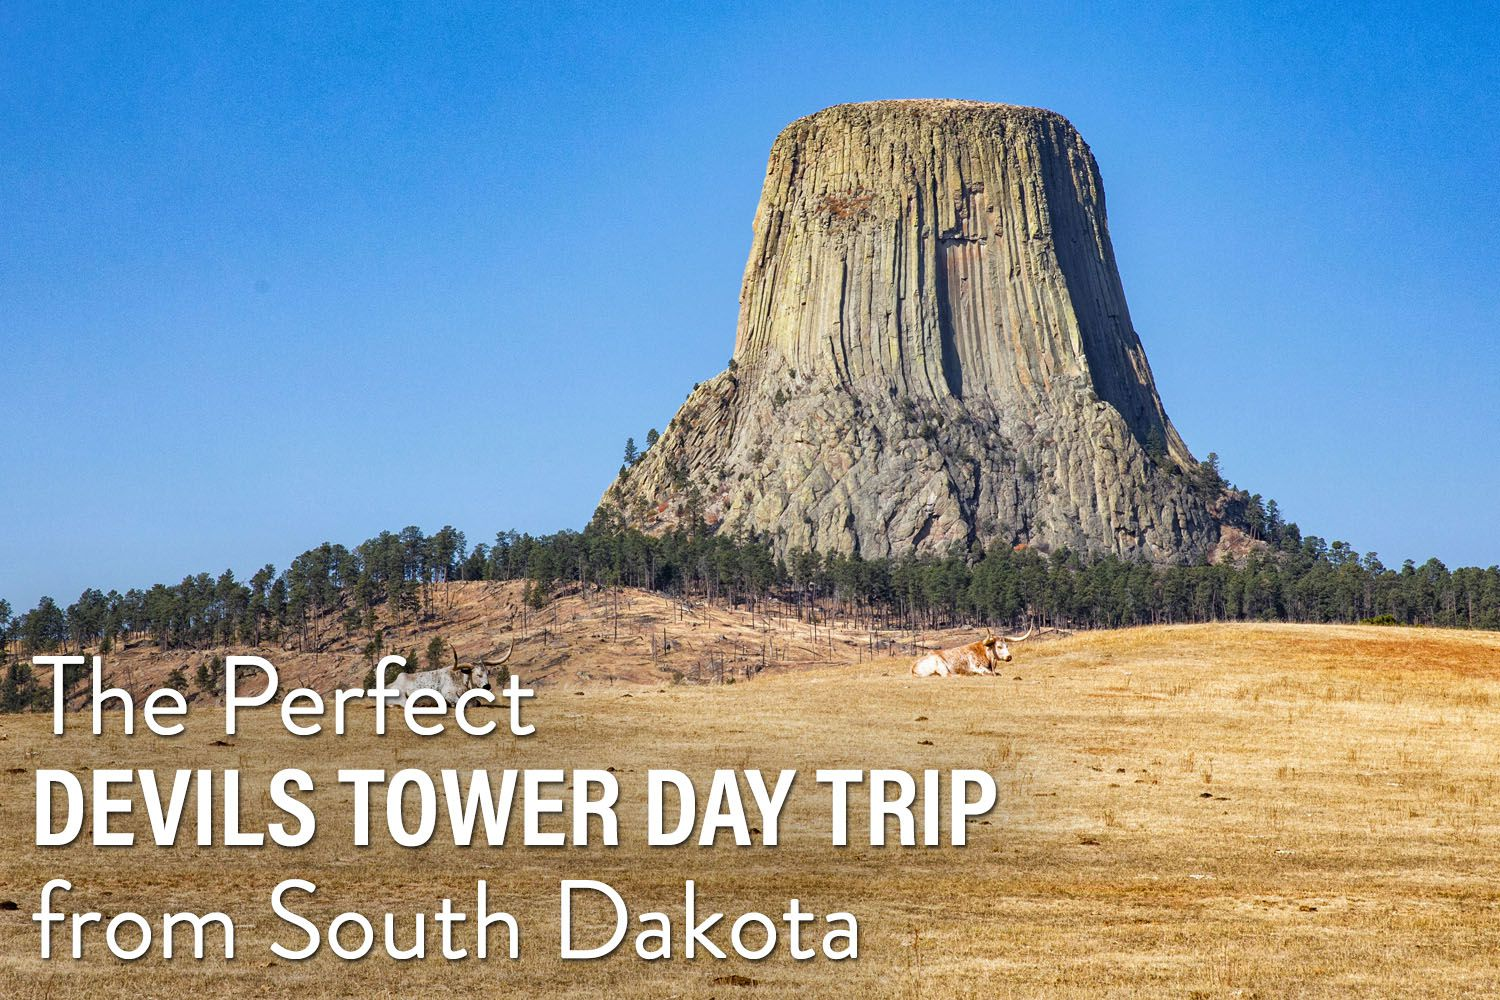 Devils Tower Day Trip